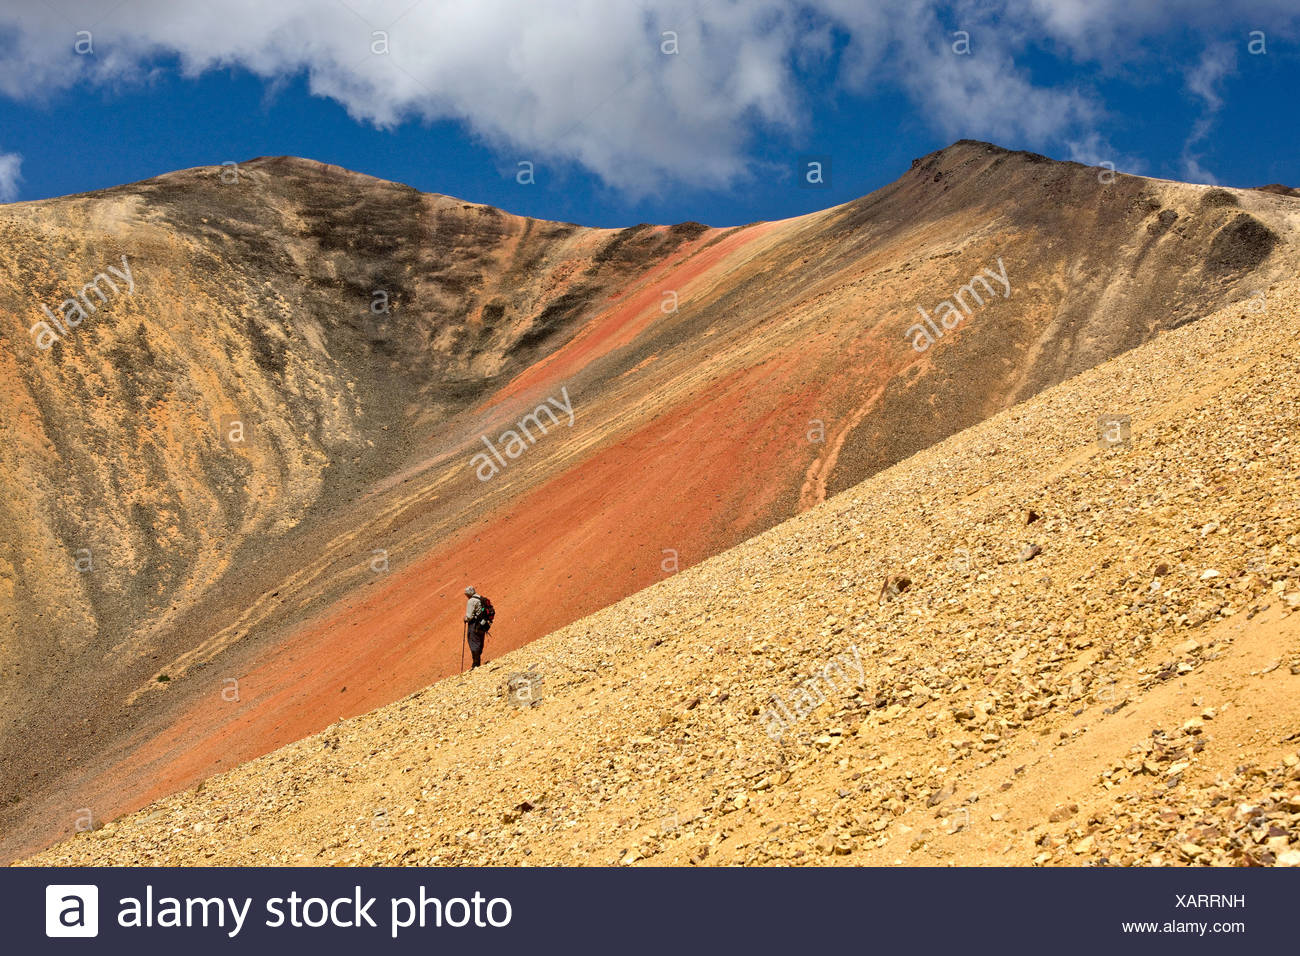 Hiking in the volcanic landscape of the Rainbow Mountains of British Columbia Canada Stock Photo